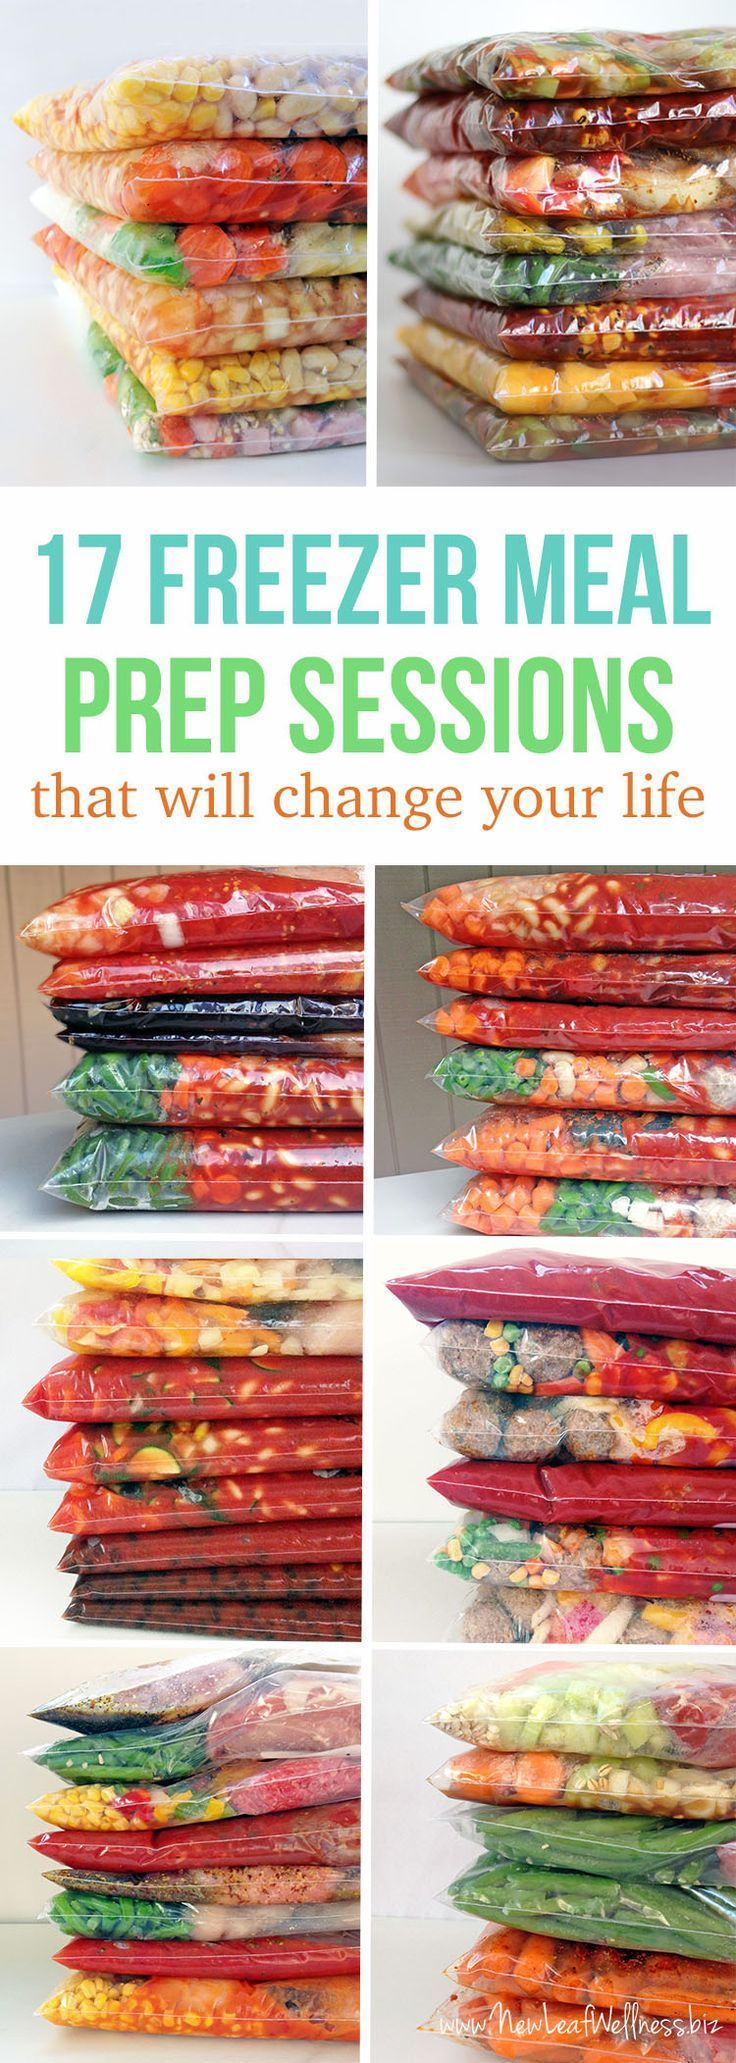 17 Freezer Meal Prep Sessions That Will Change Your Life (grocery Lists and printable recipes included). Simply combine the ingredients in a gallon-sized bag and freeze! More